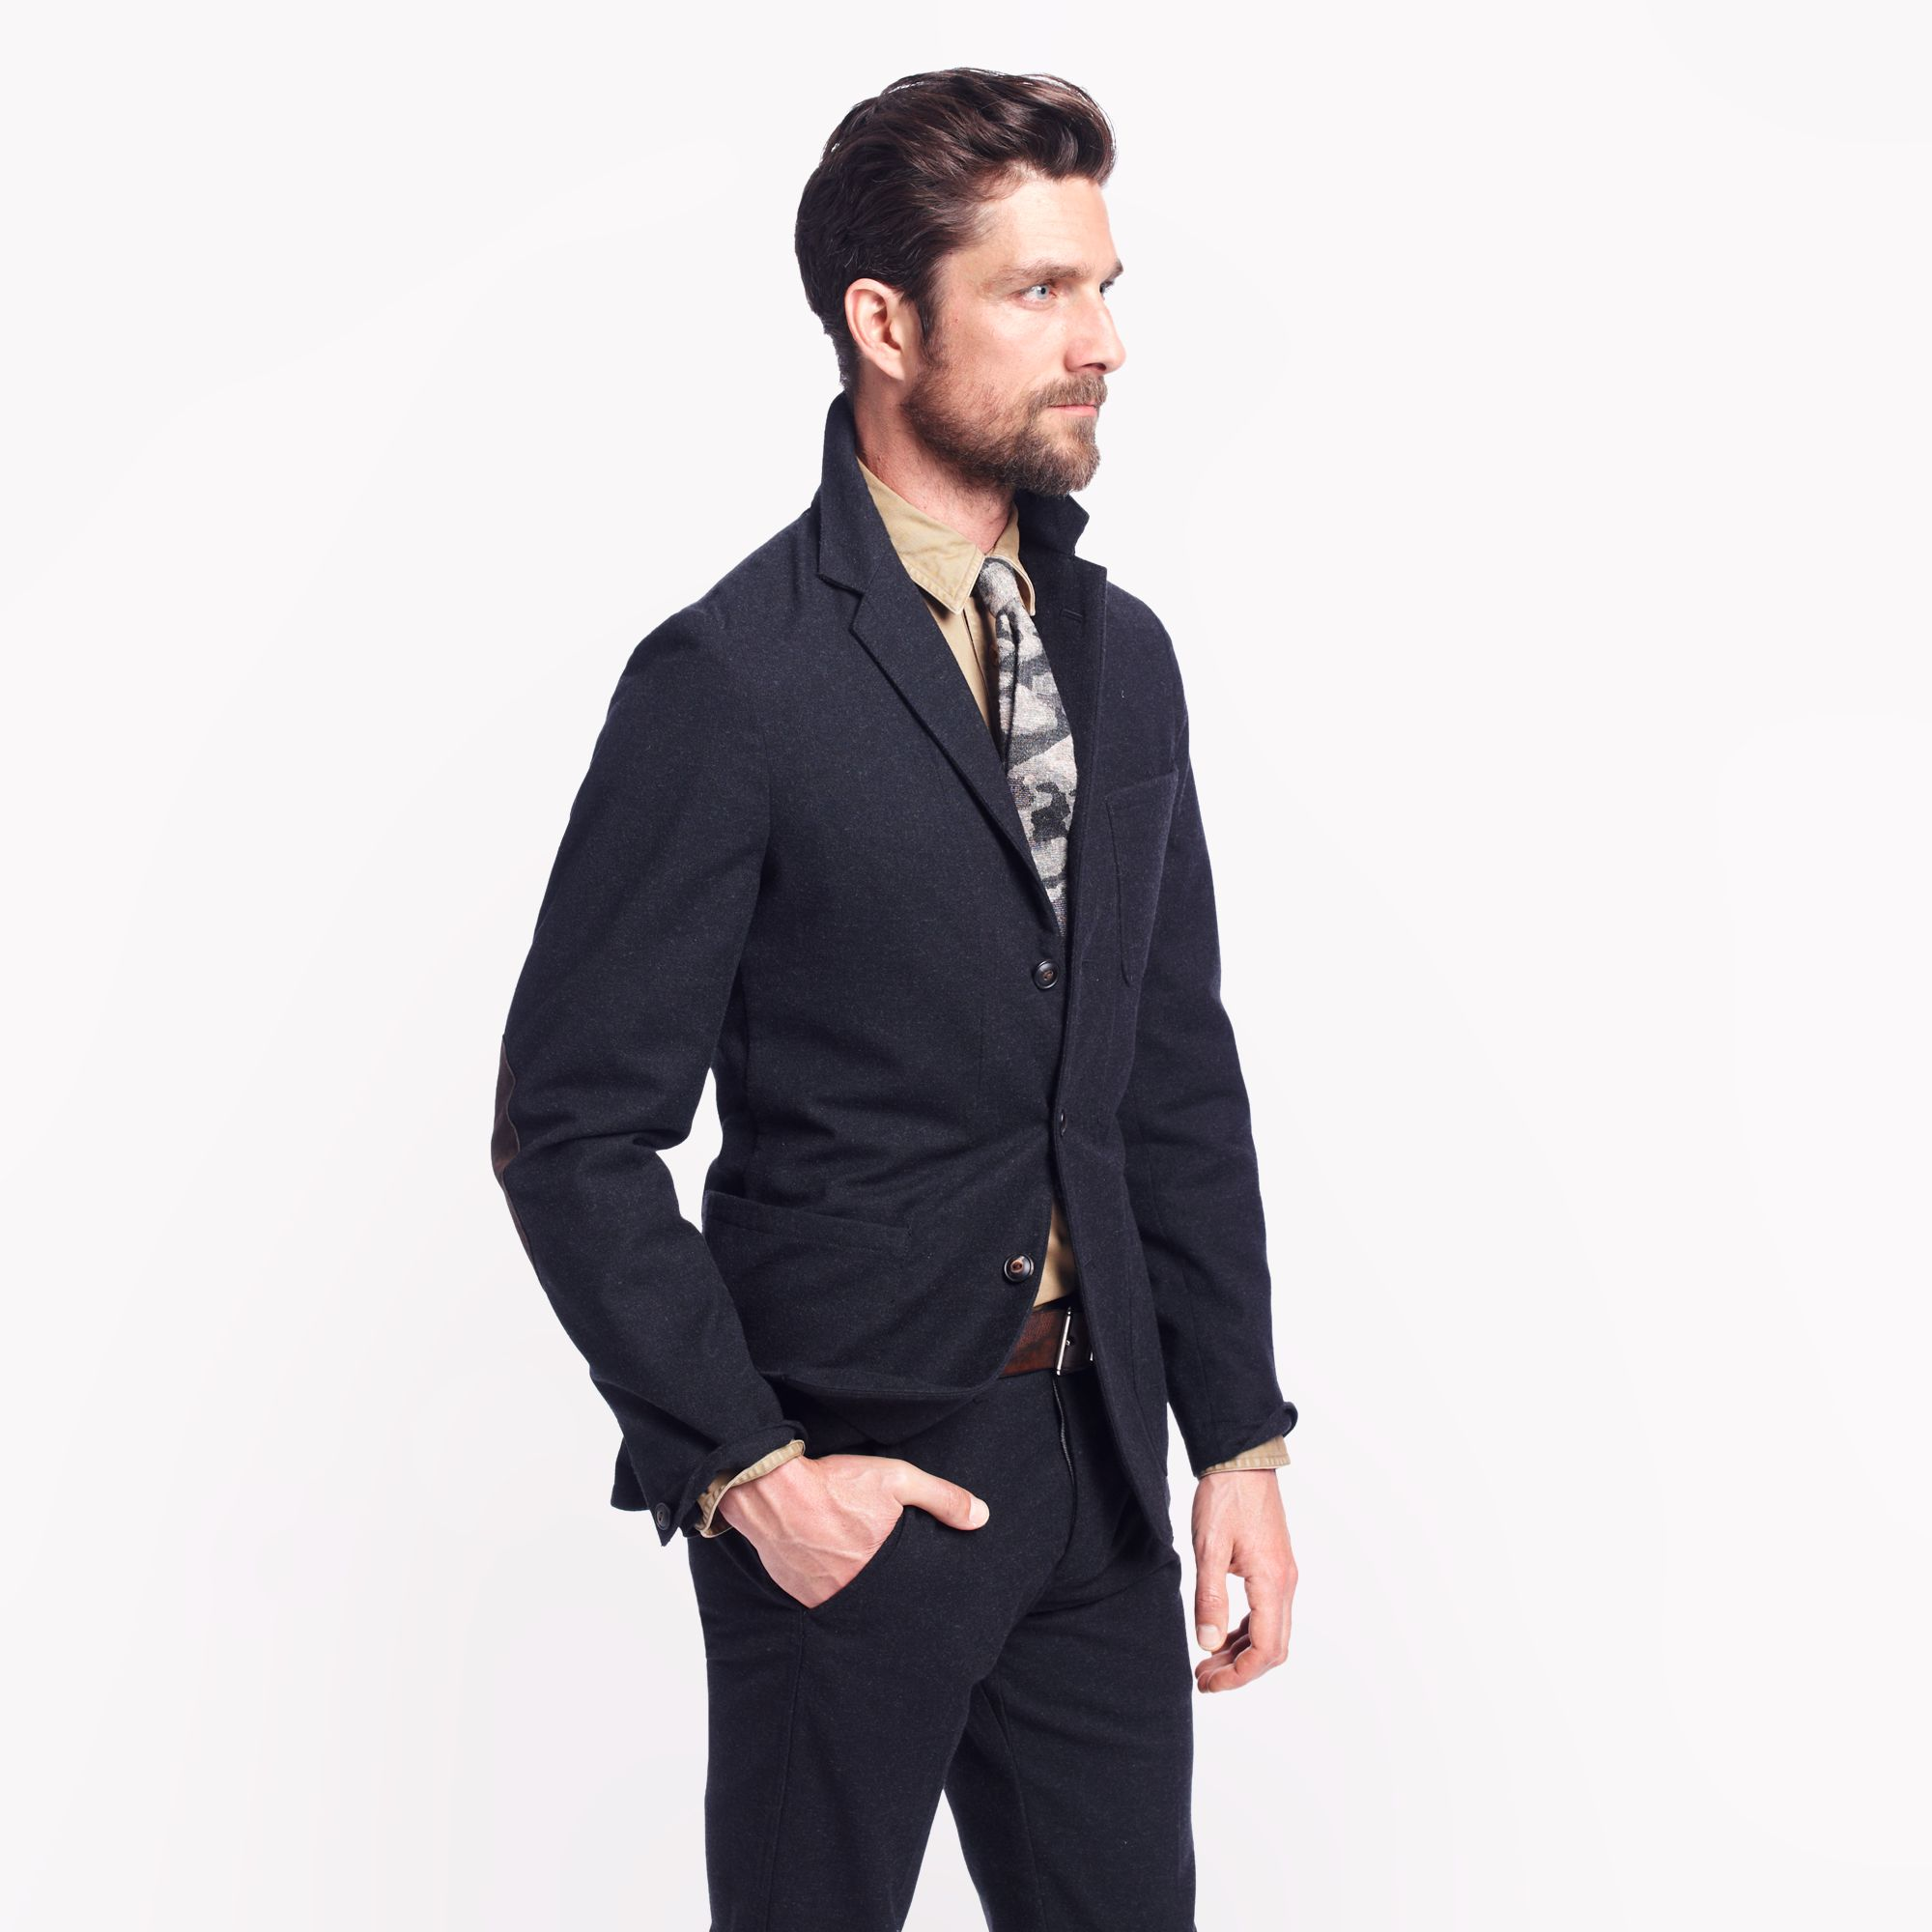 J Crew Wallace Barnes Unstructured Worker Suit Jacket In